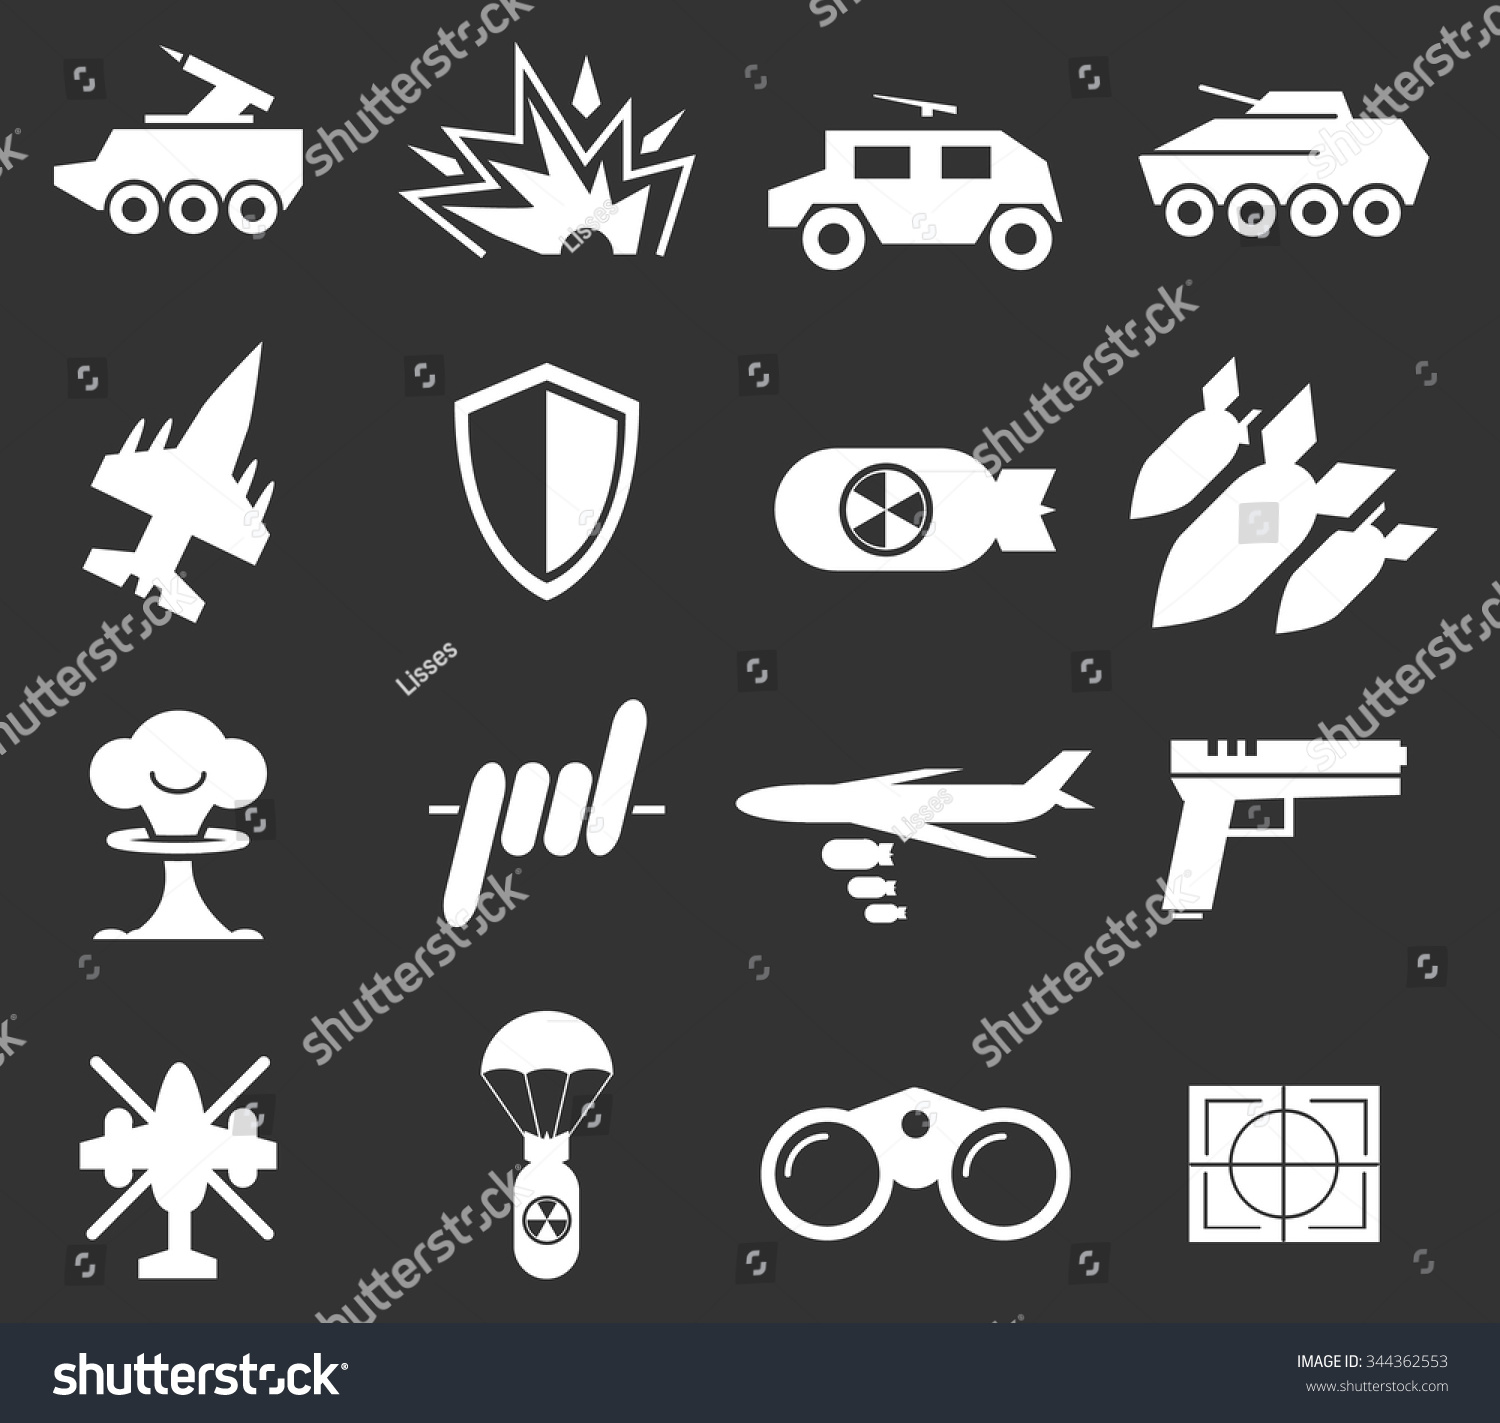 War symbol web icons stock vector 344362553 shutterstock war symbol for web icons biocorpaavc Images